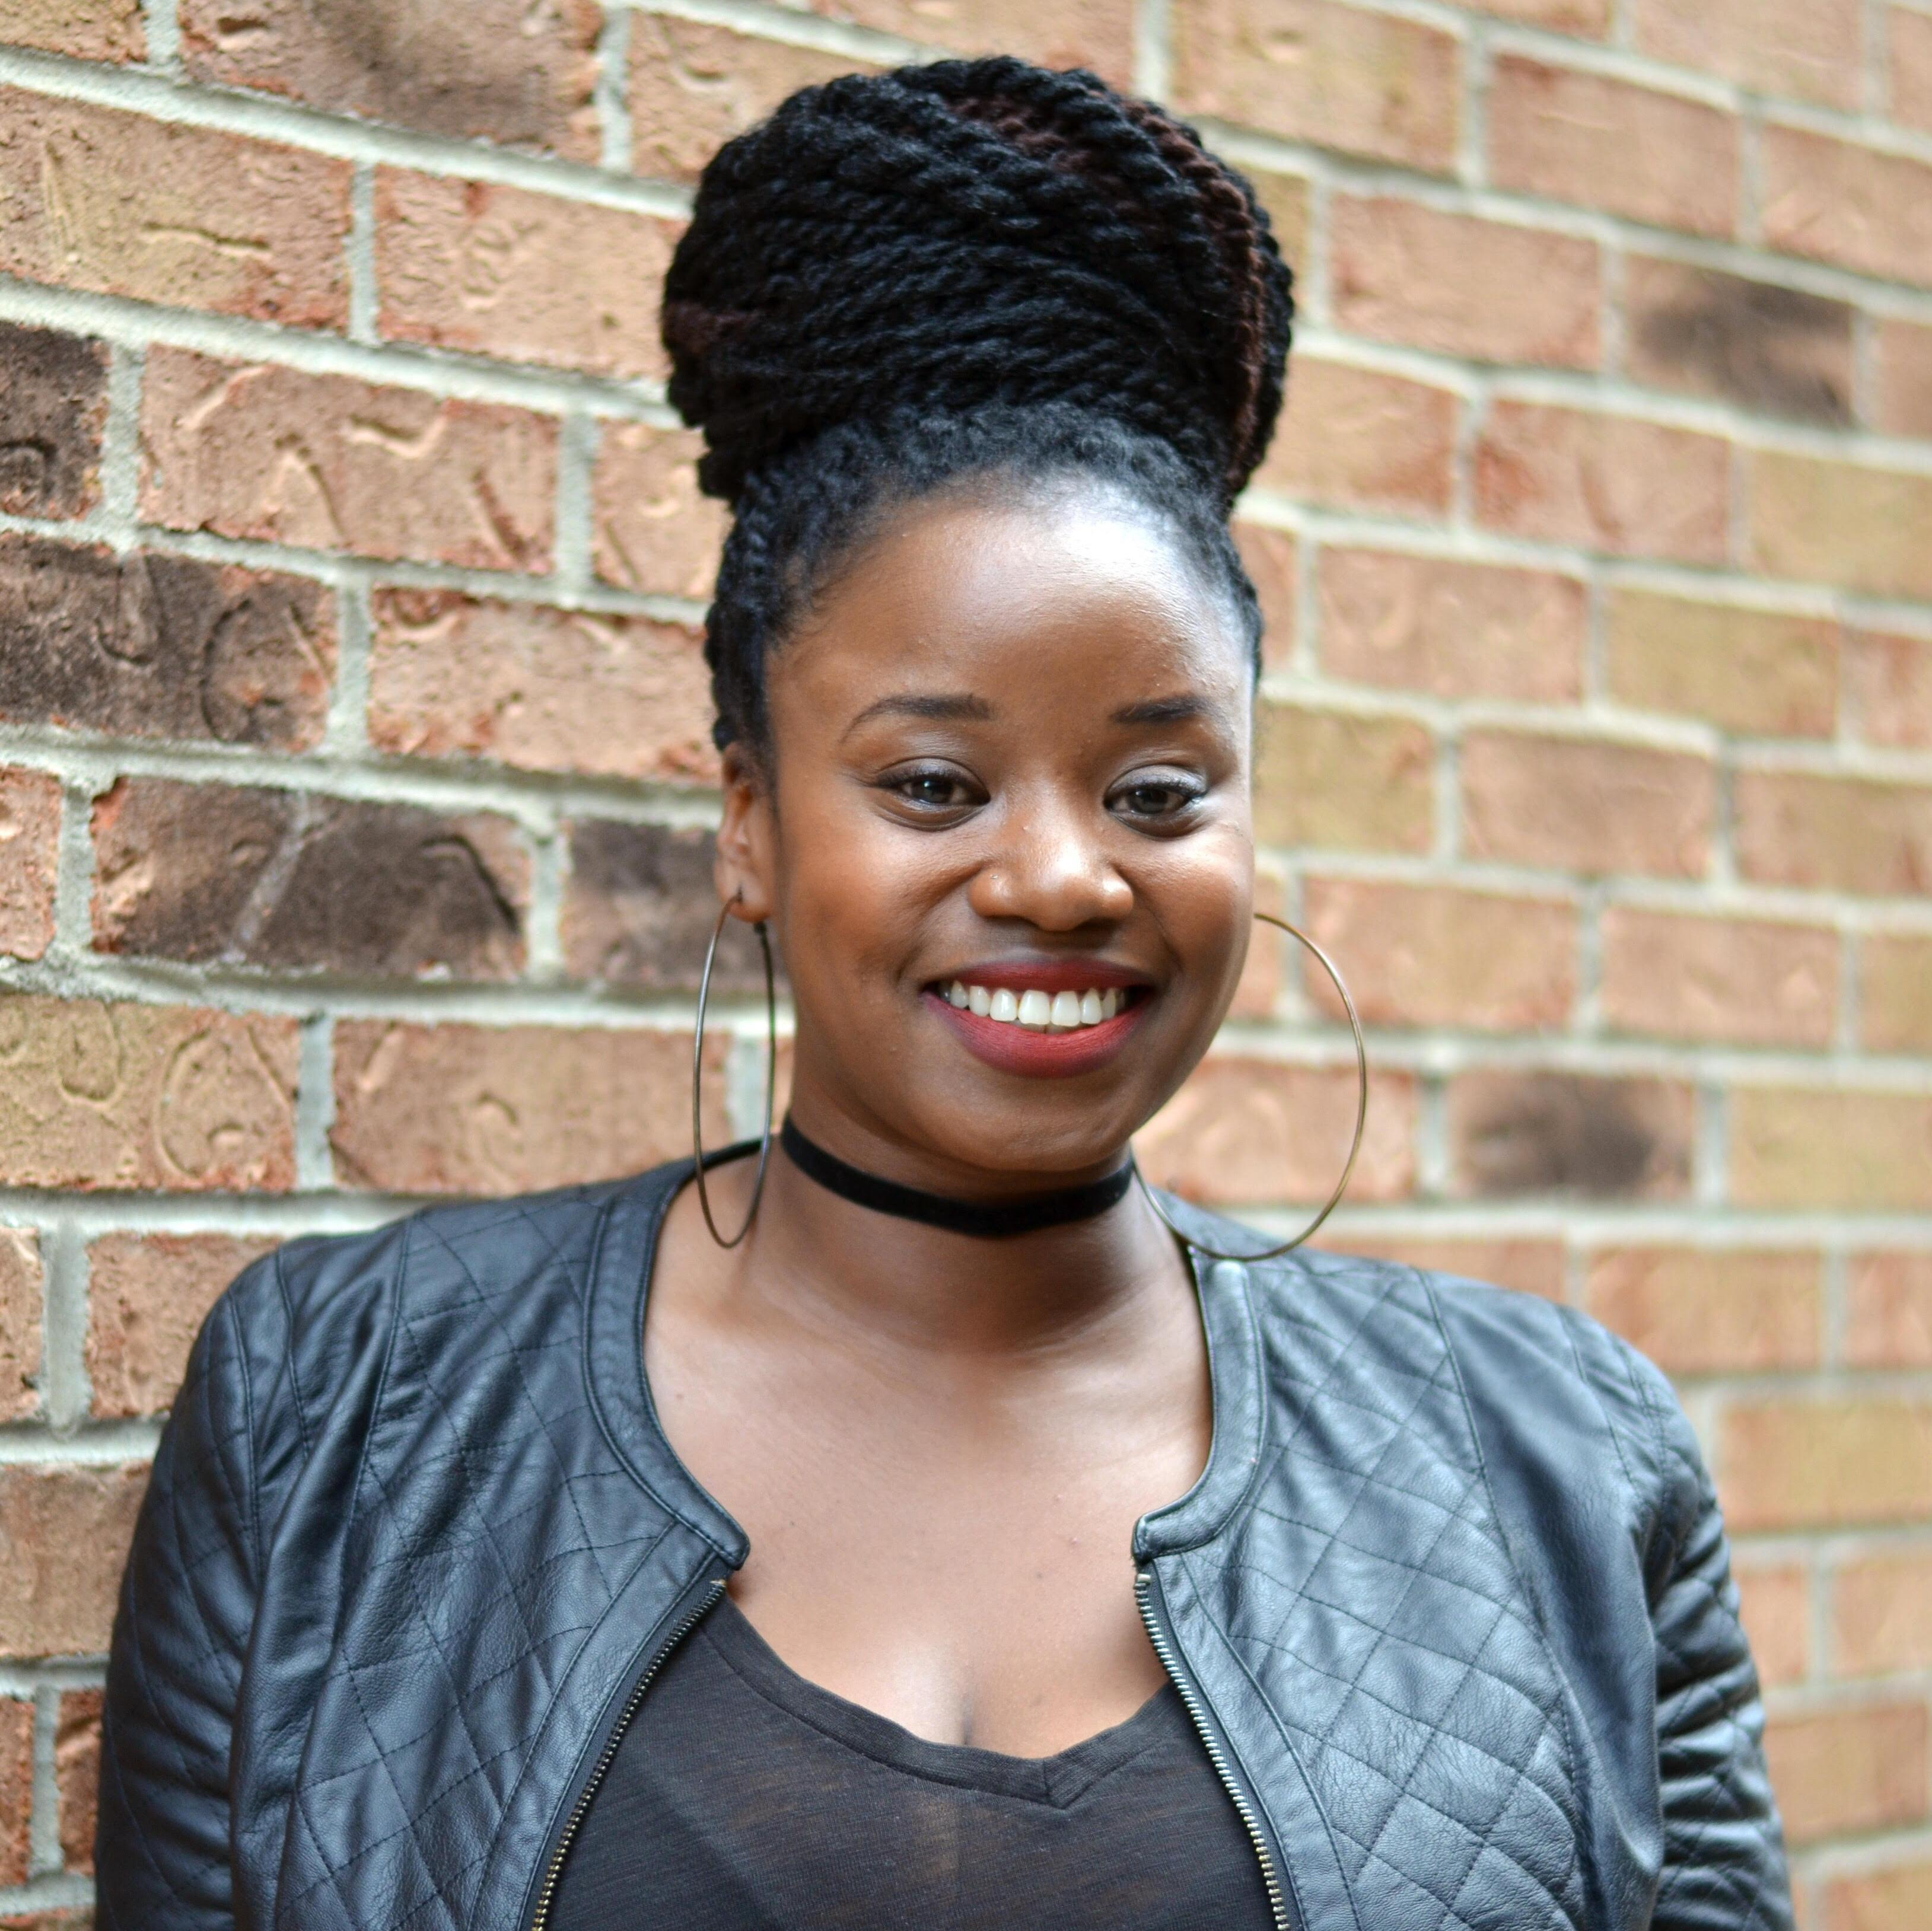 Kelli Jones launched her Indiana-based VC firm Sixty8 Capital to invest in underrepresented founders in the Midwest.